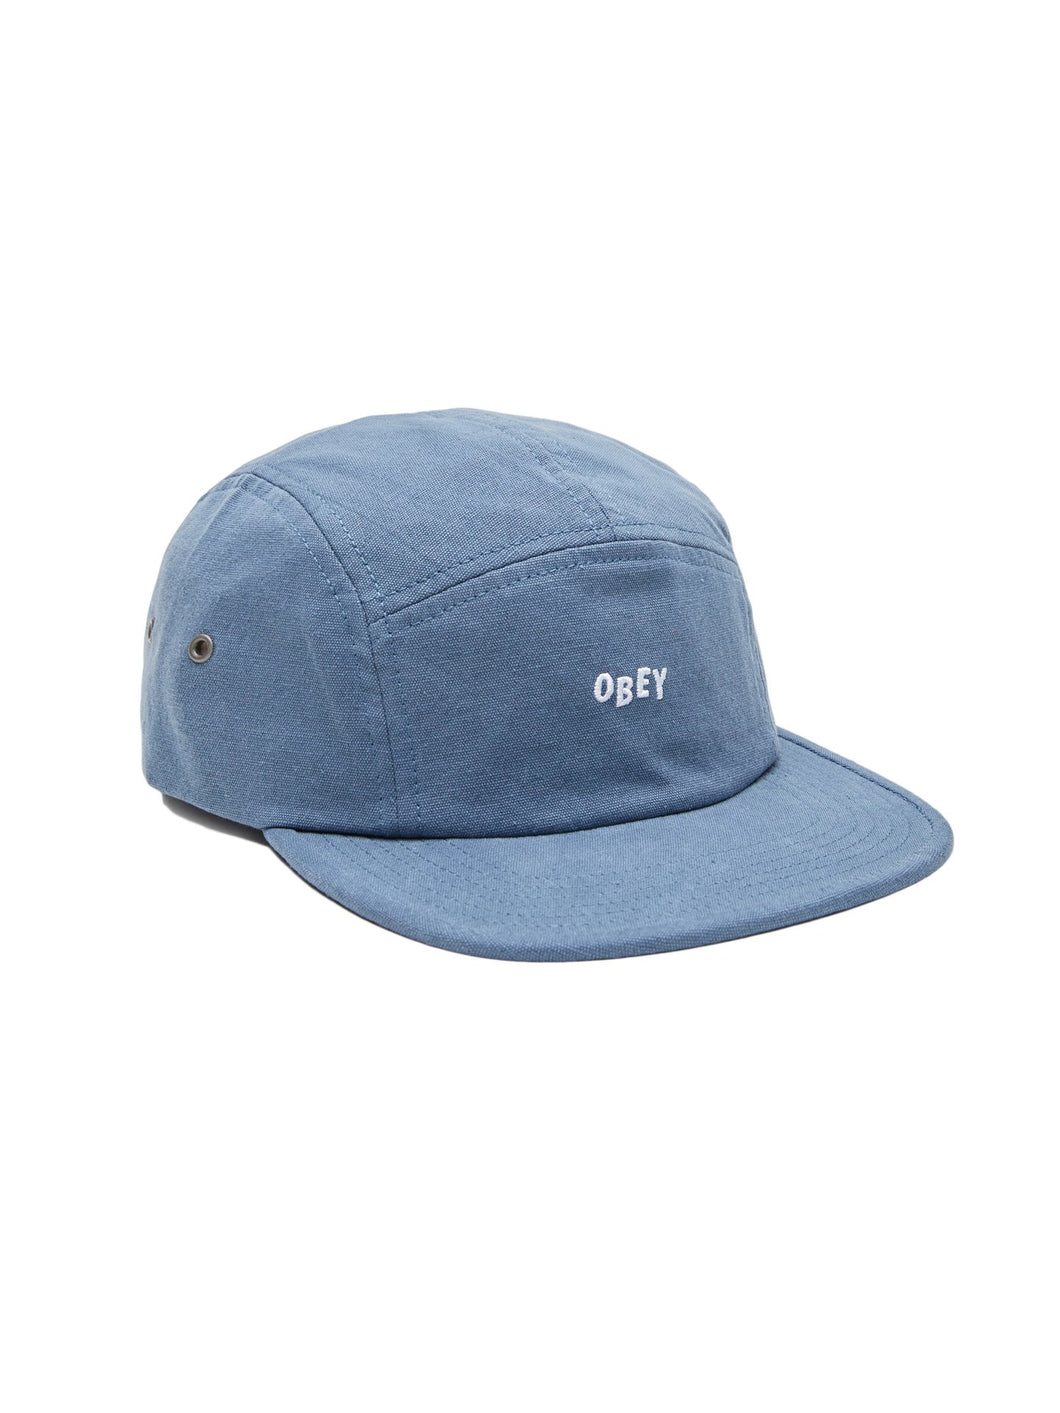 b93e2485b7f1e OBEY JUMBLE BAR 5 PANEL HAT    VINTAGE INDIGO – Collateral